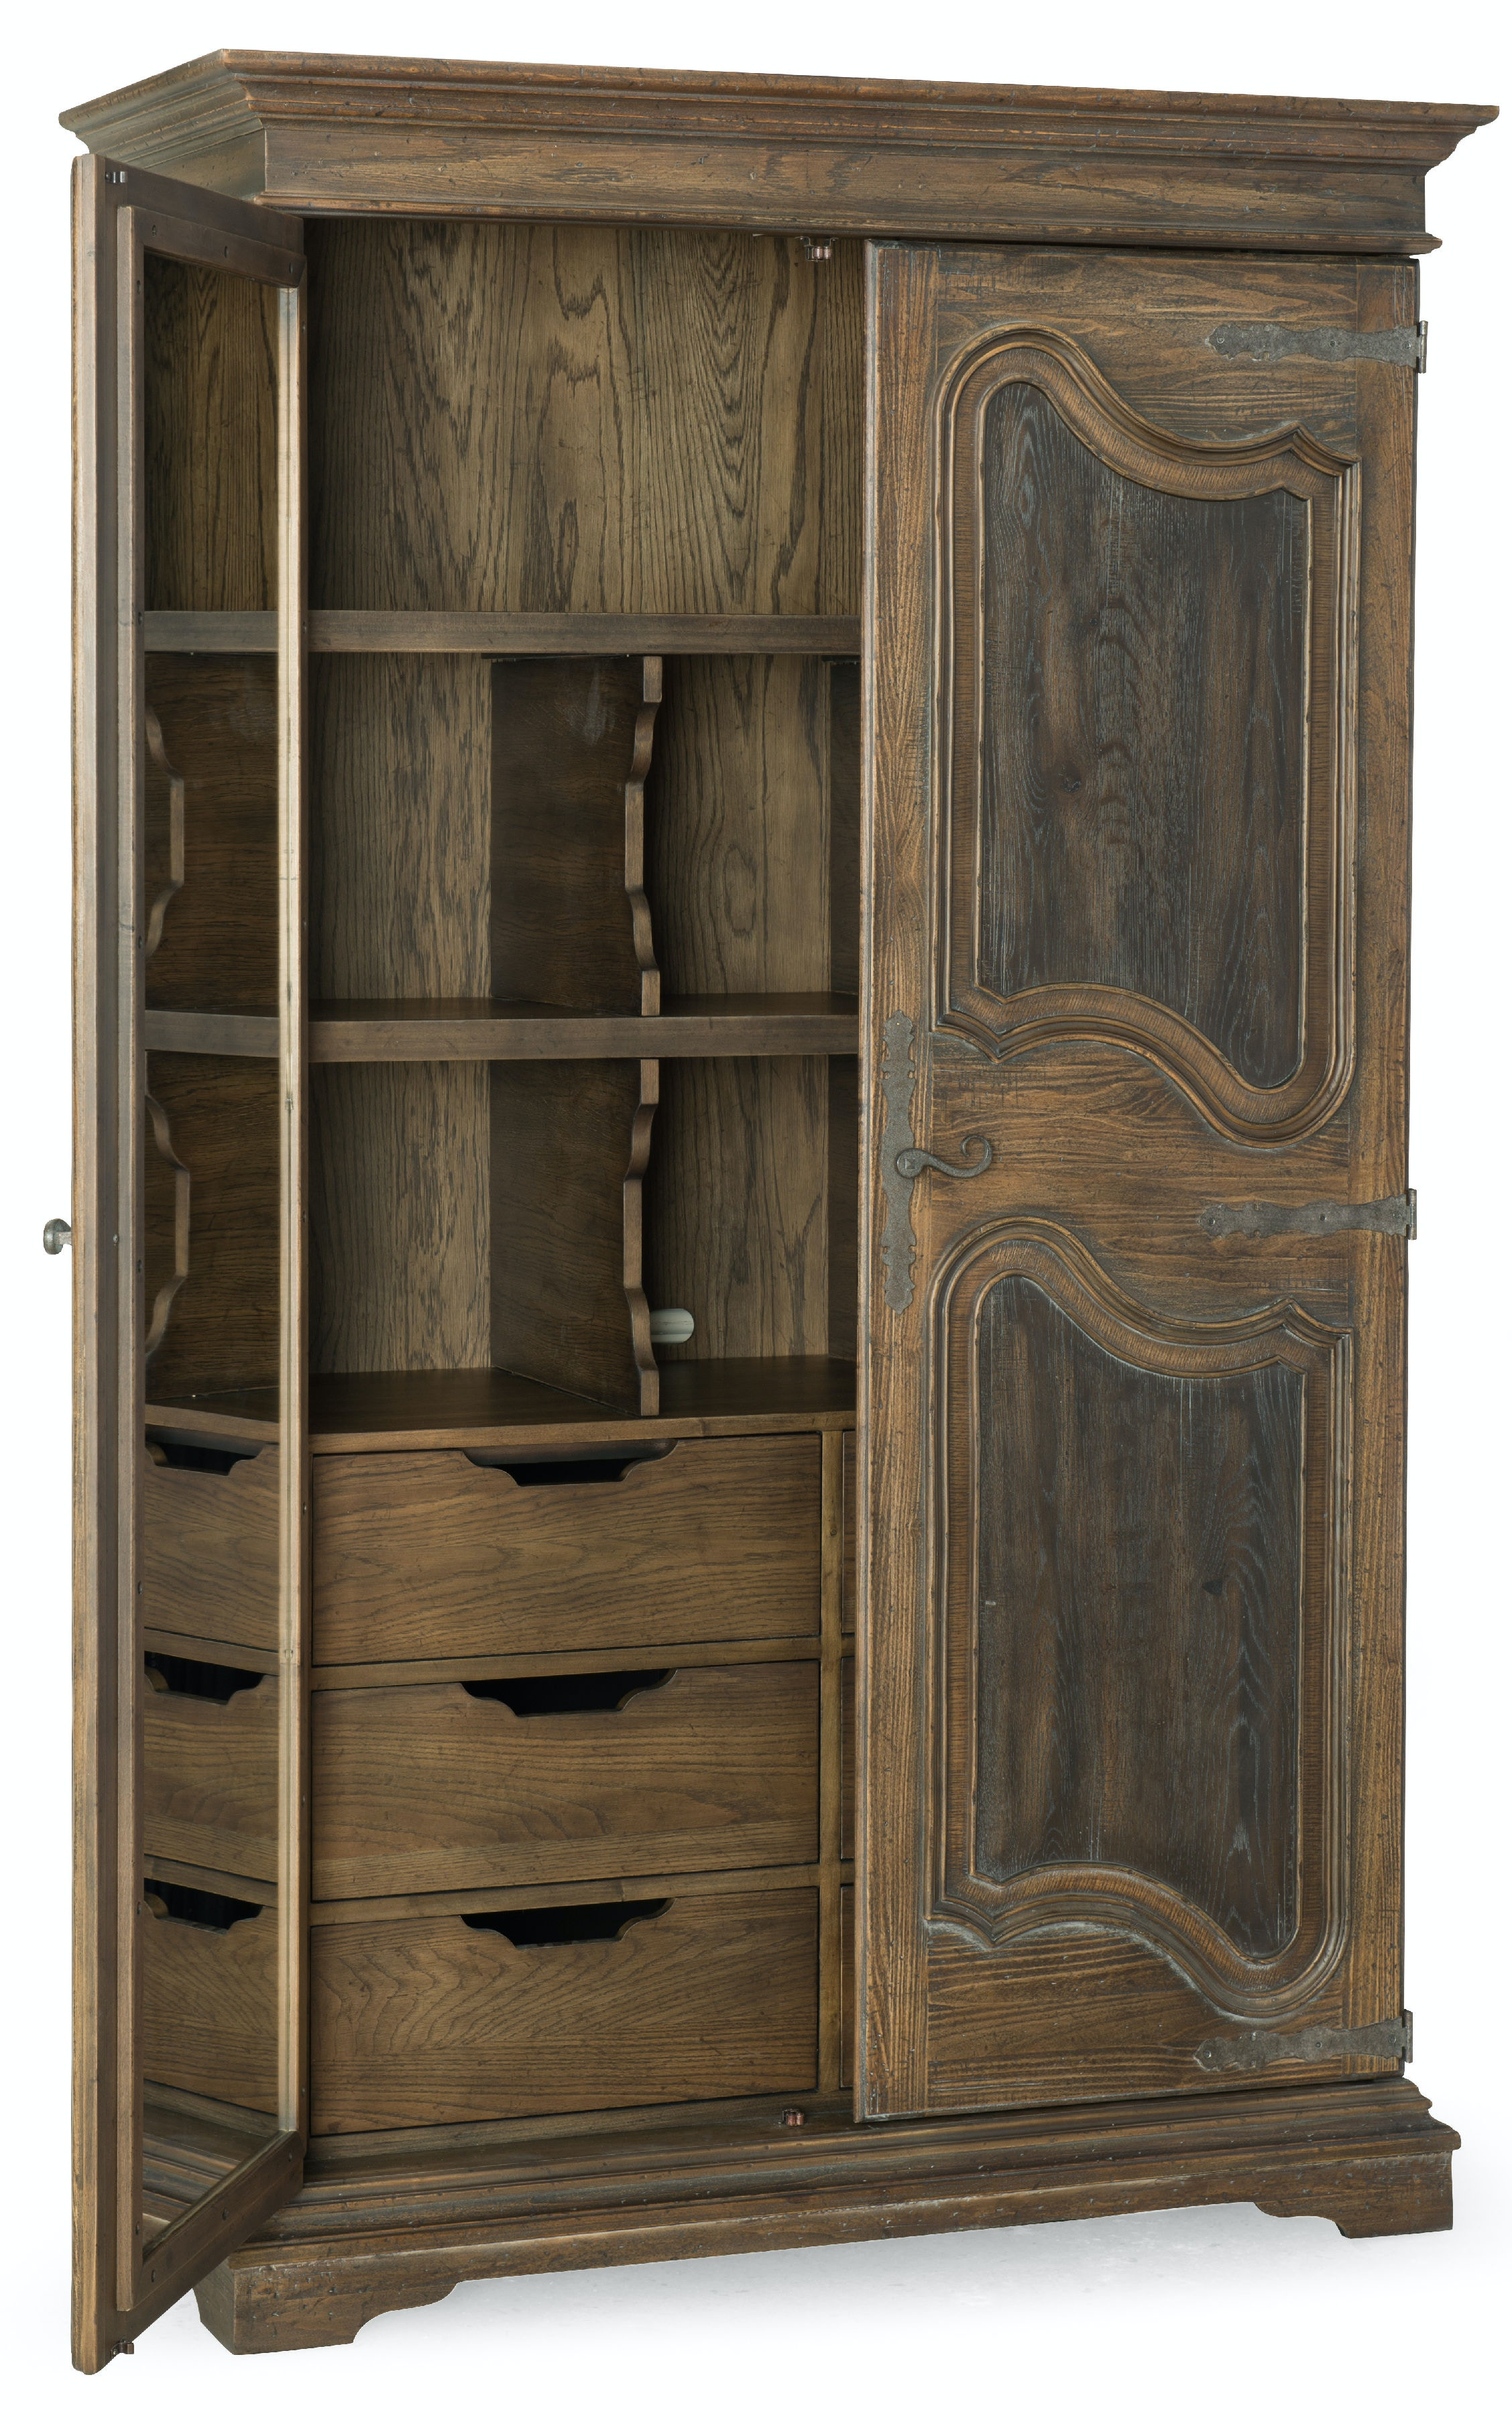 Hooker Furniture Bedroom Lakehills Wardrobe 5960 90013